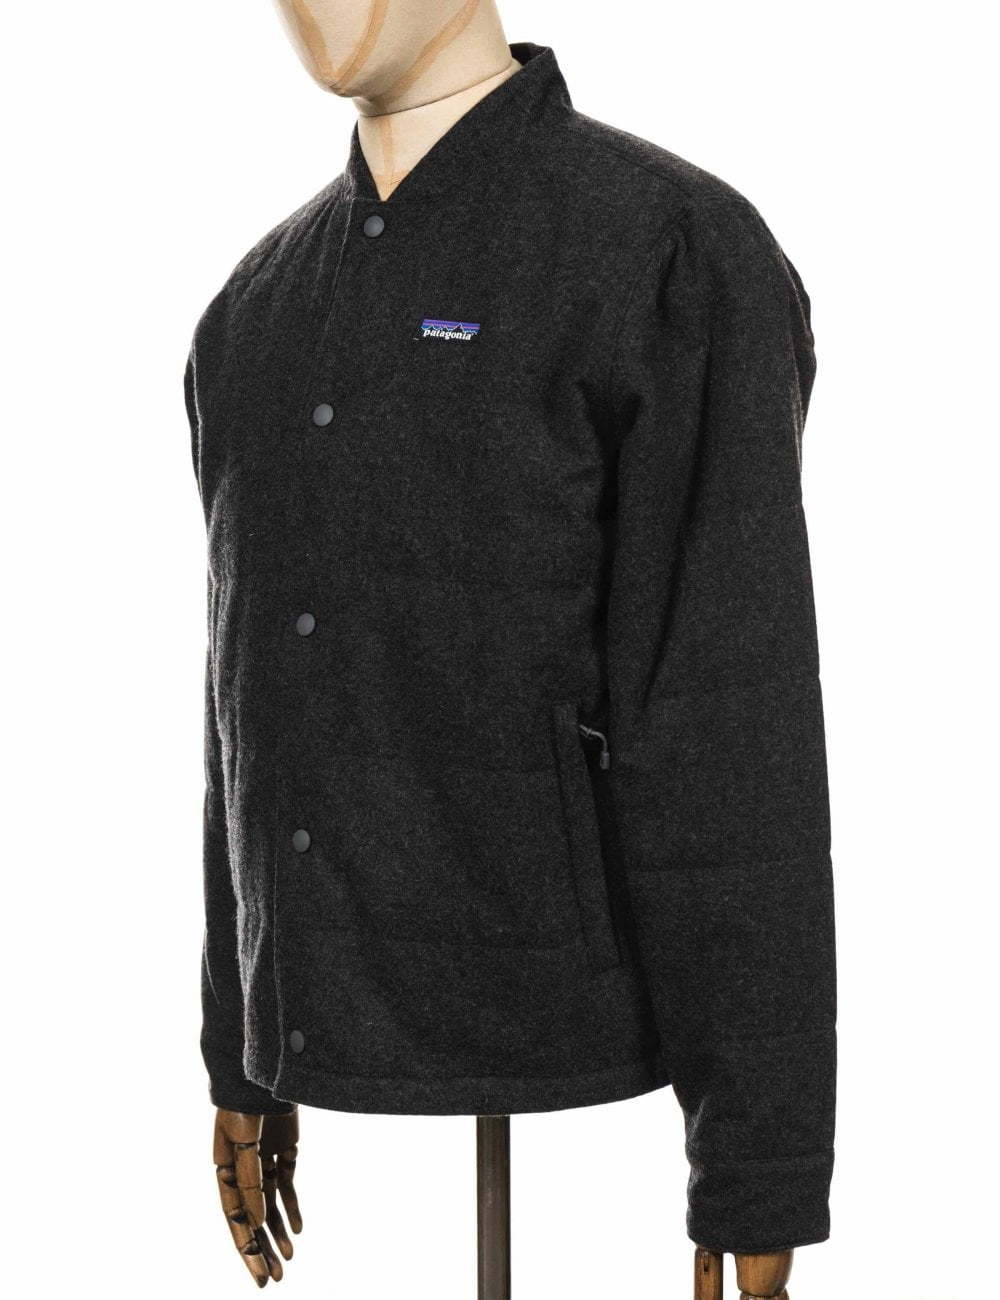 3b954d0fe Recycled Wool Bomber Jacket - Forge Grey